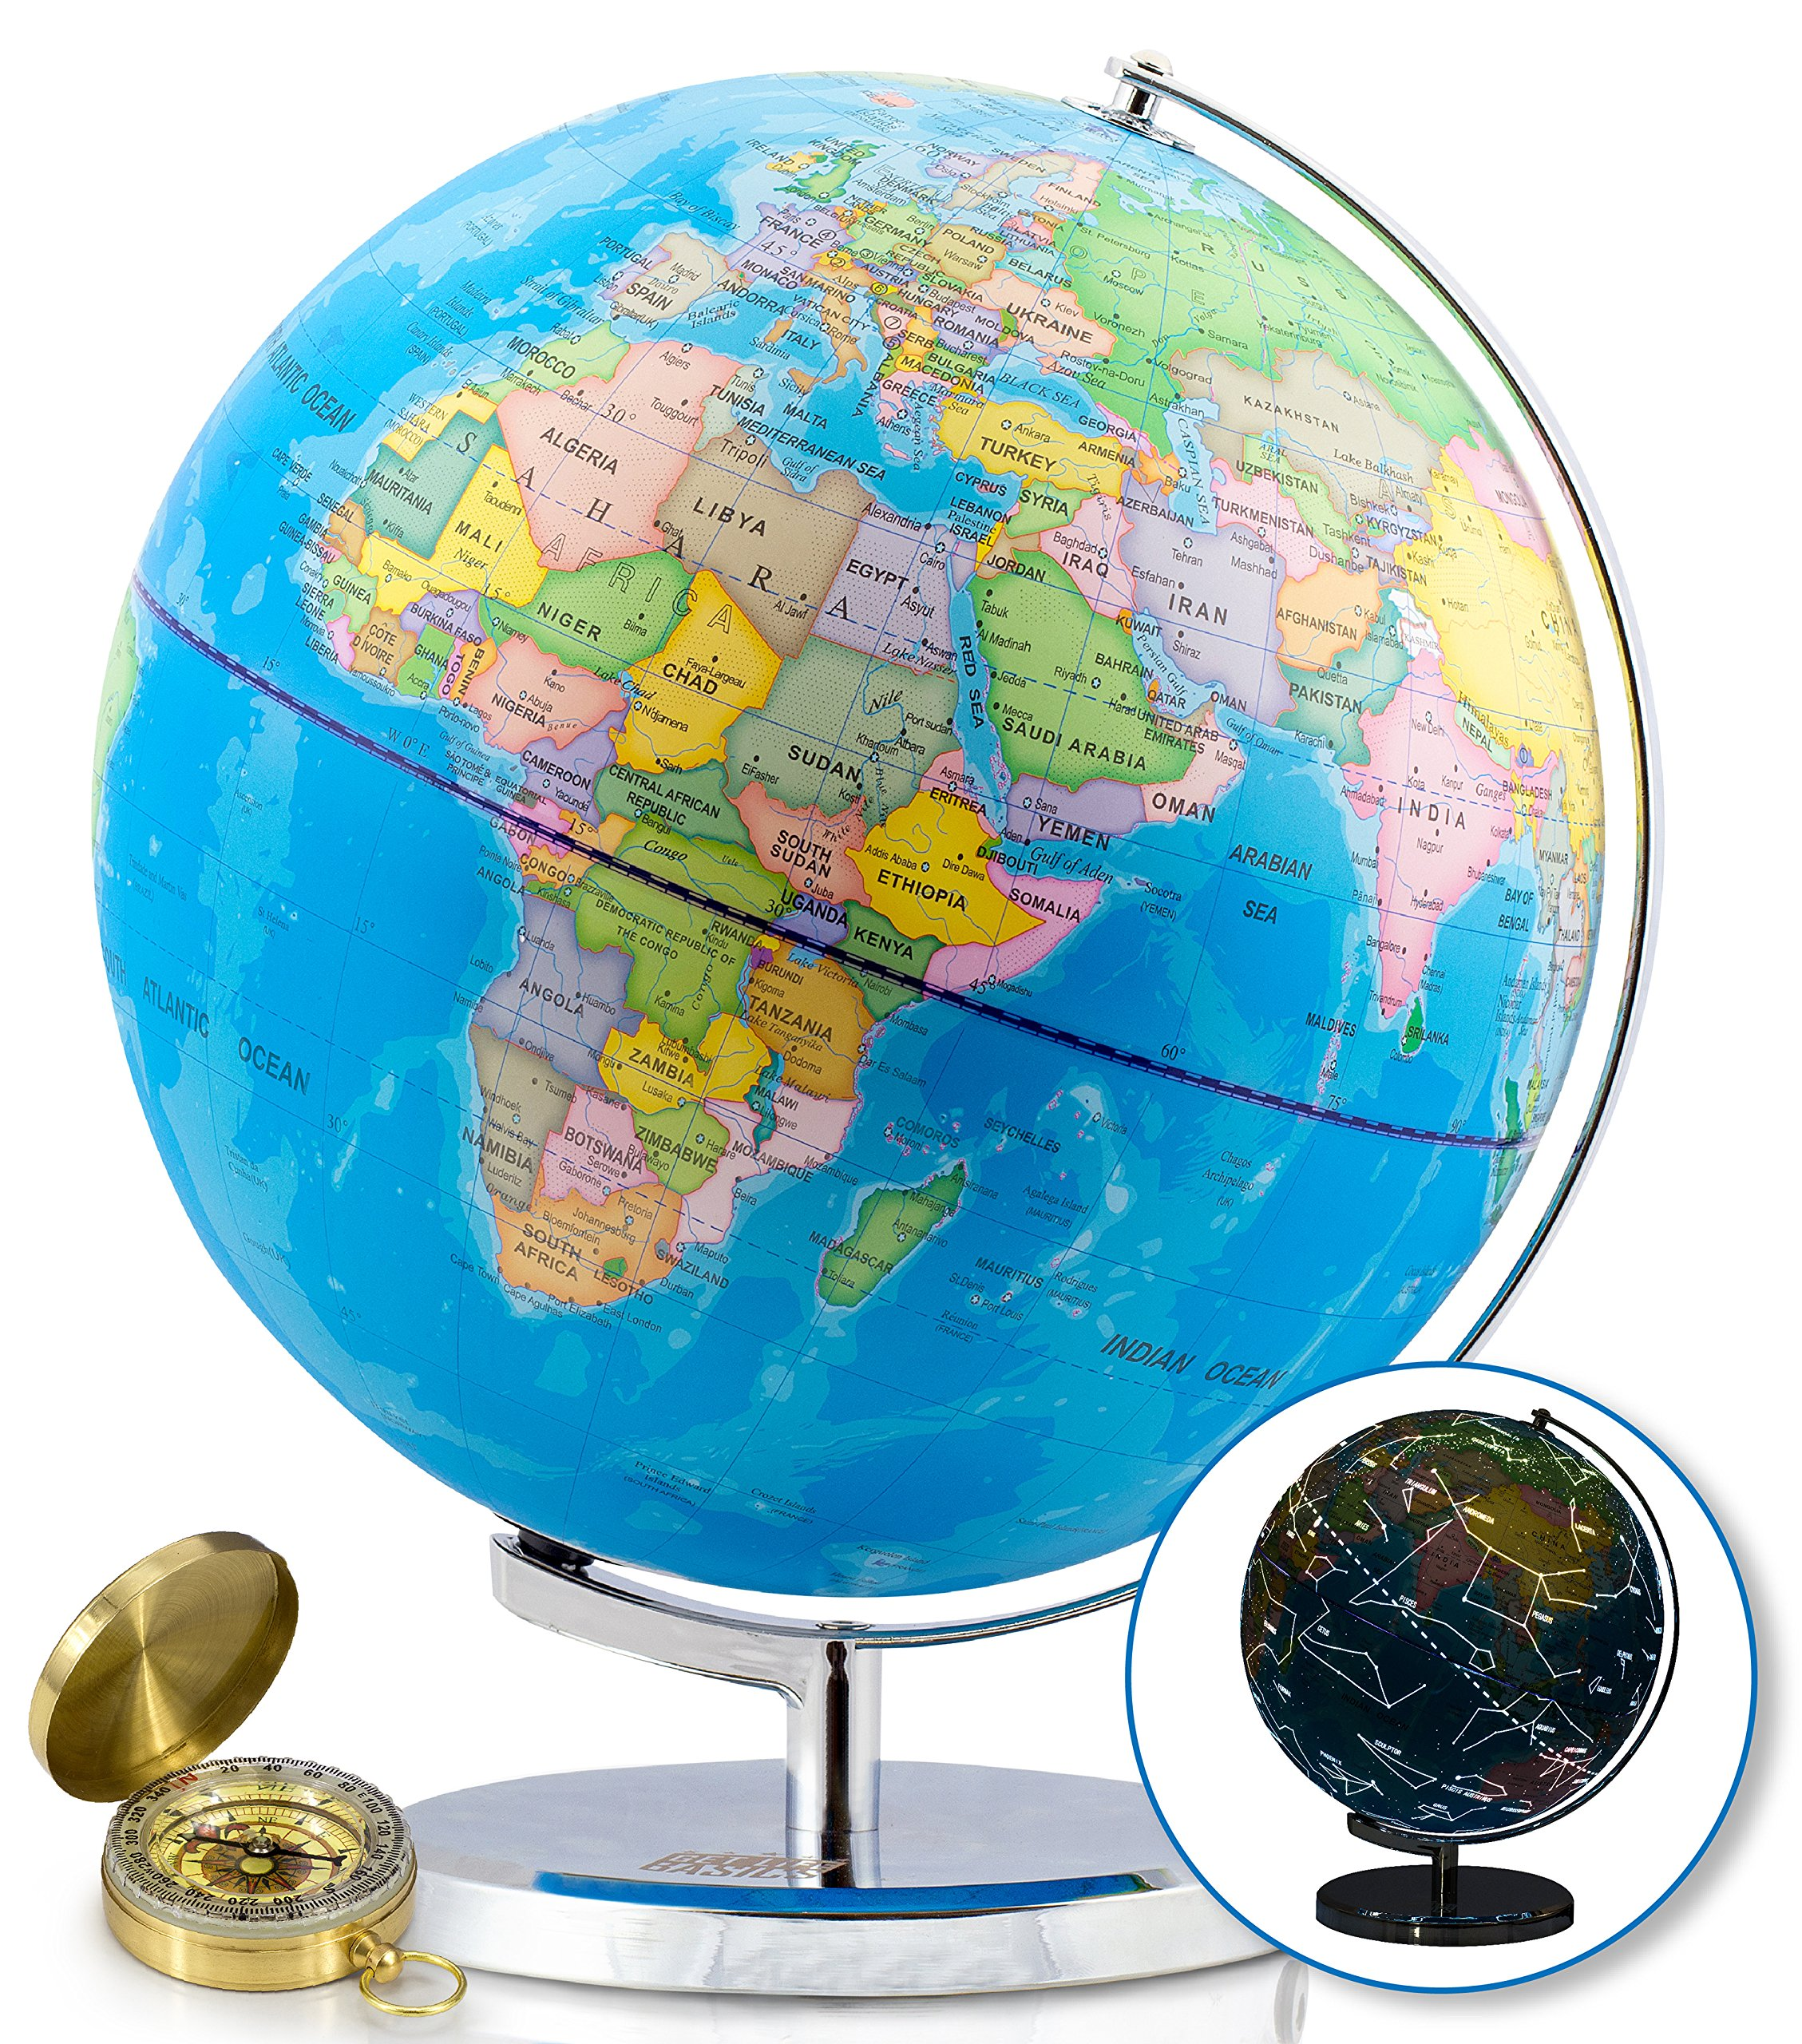 World Globe with Illuminated Constellations - 13'' Light Up Globe For Kids & Adults - Interactive Earth Globe Makes Great Educational Toys, Office Supplies, Teacher Desk Décor, More by Get Life Basics by GET LIFE BASICS